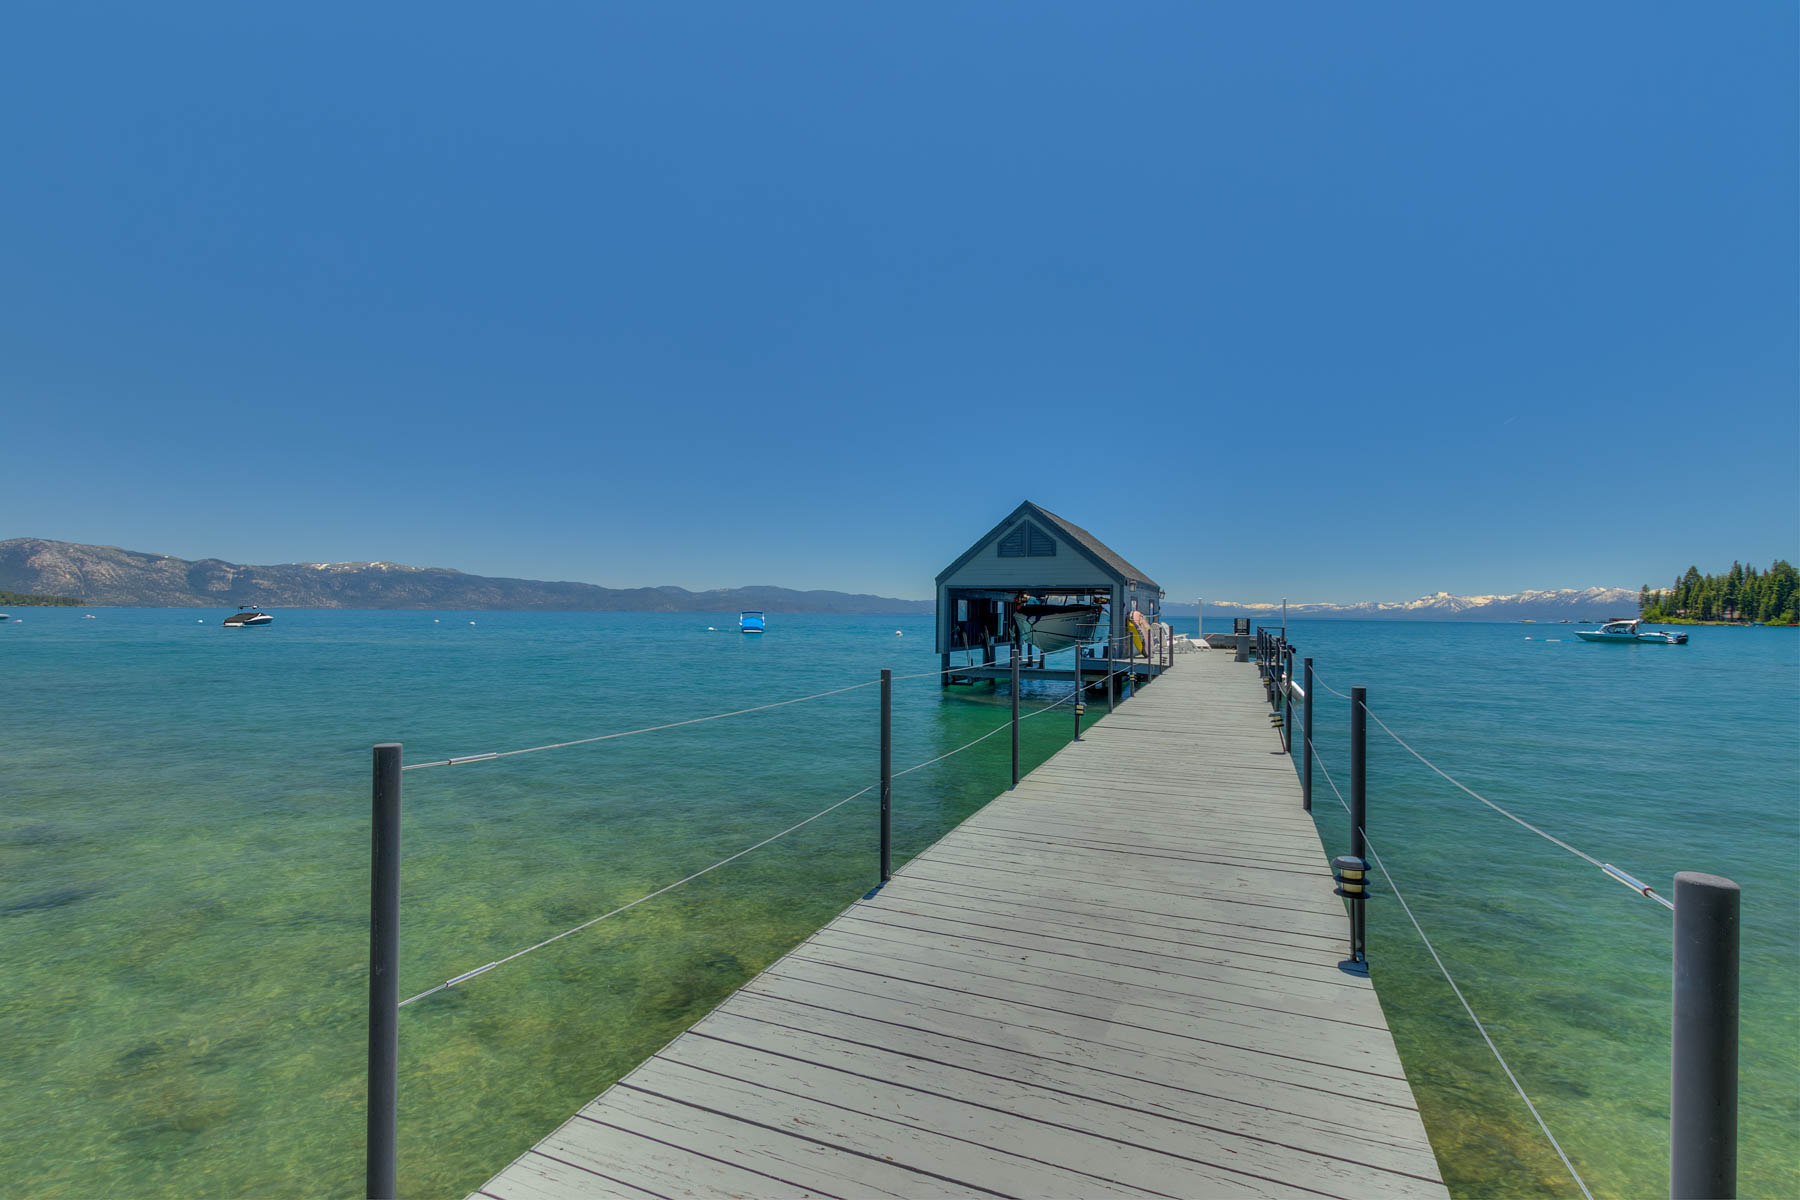 Property for Active at 6100 N Lake Blvd., Tahoe Vista, CA 6100 N Lake Blvd. Tahoe Vista, California 96148 United States